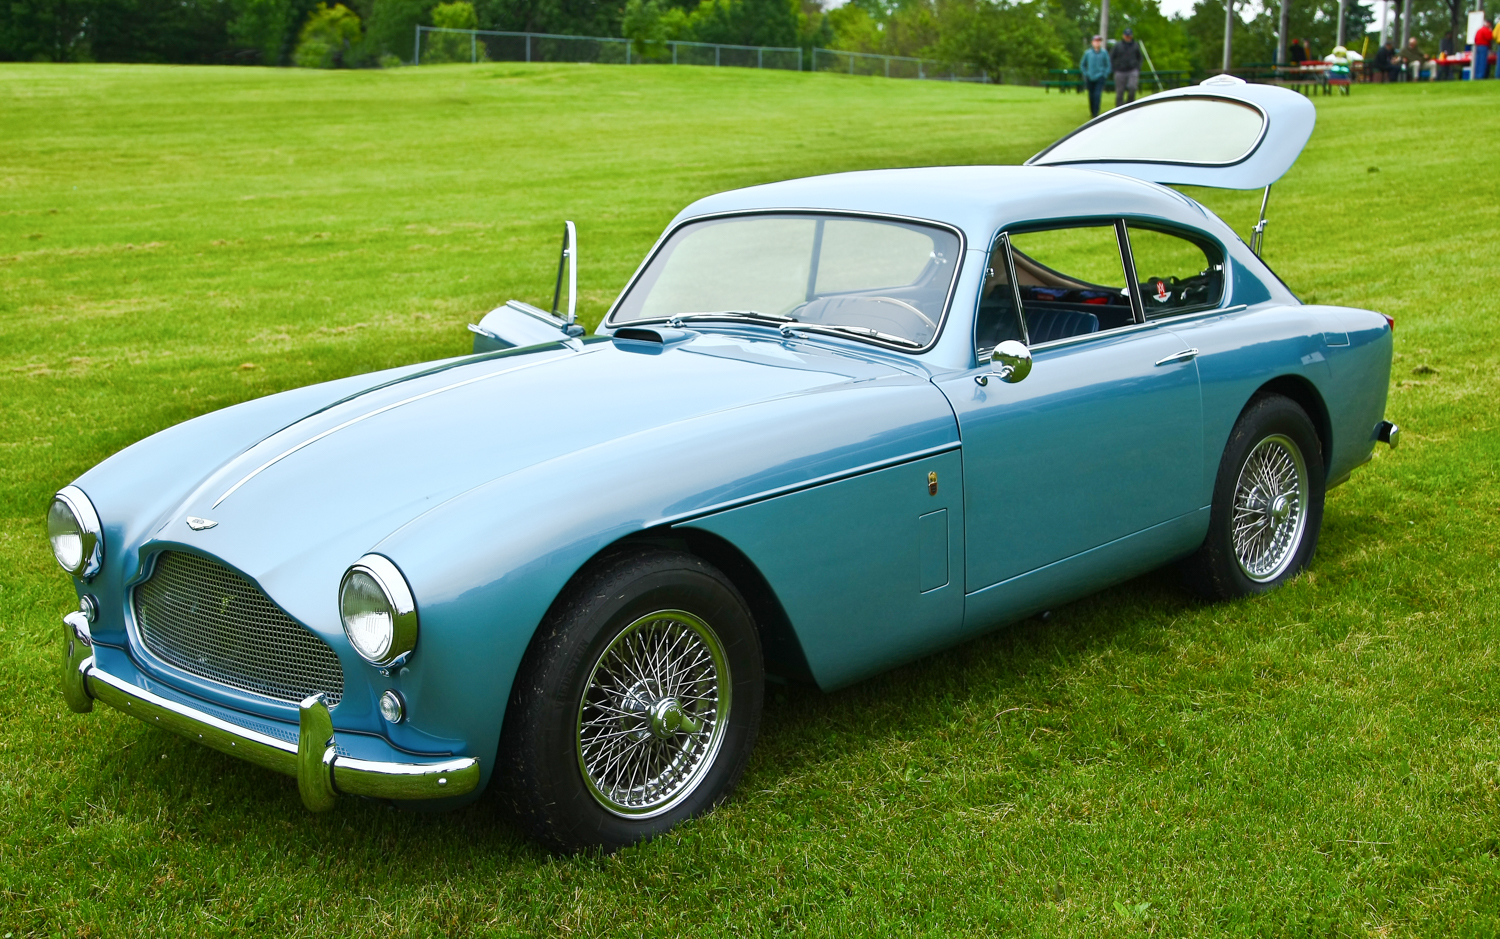 1957 Aston Martin DB III - Peter Connover